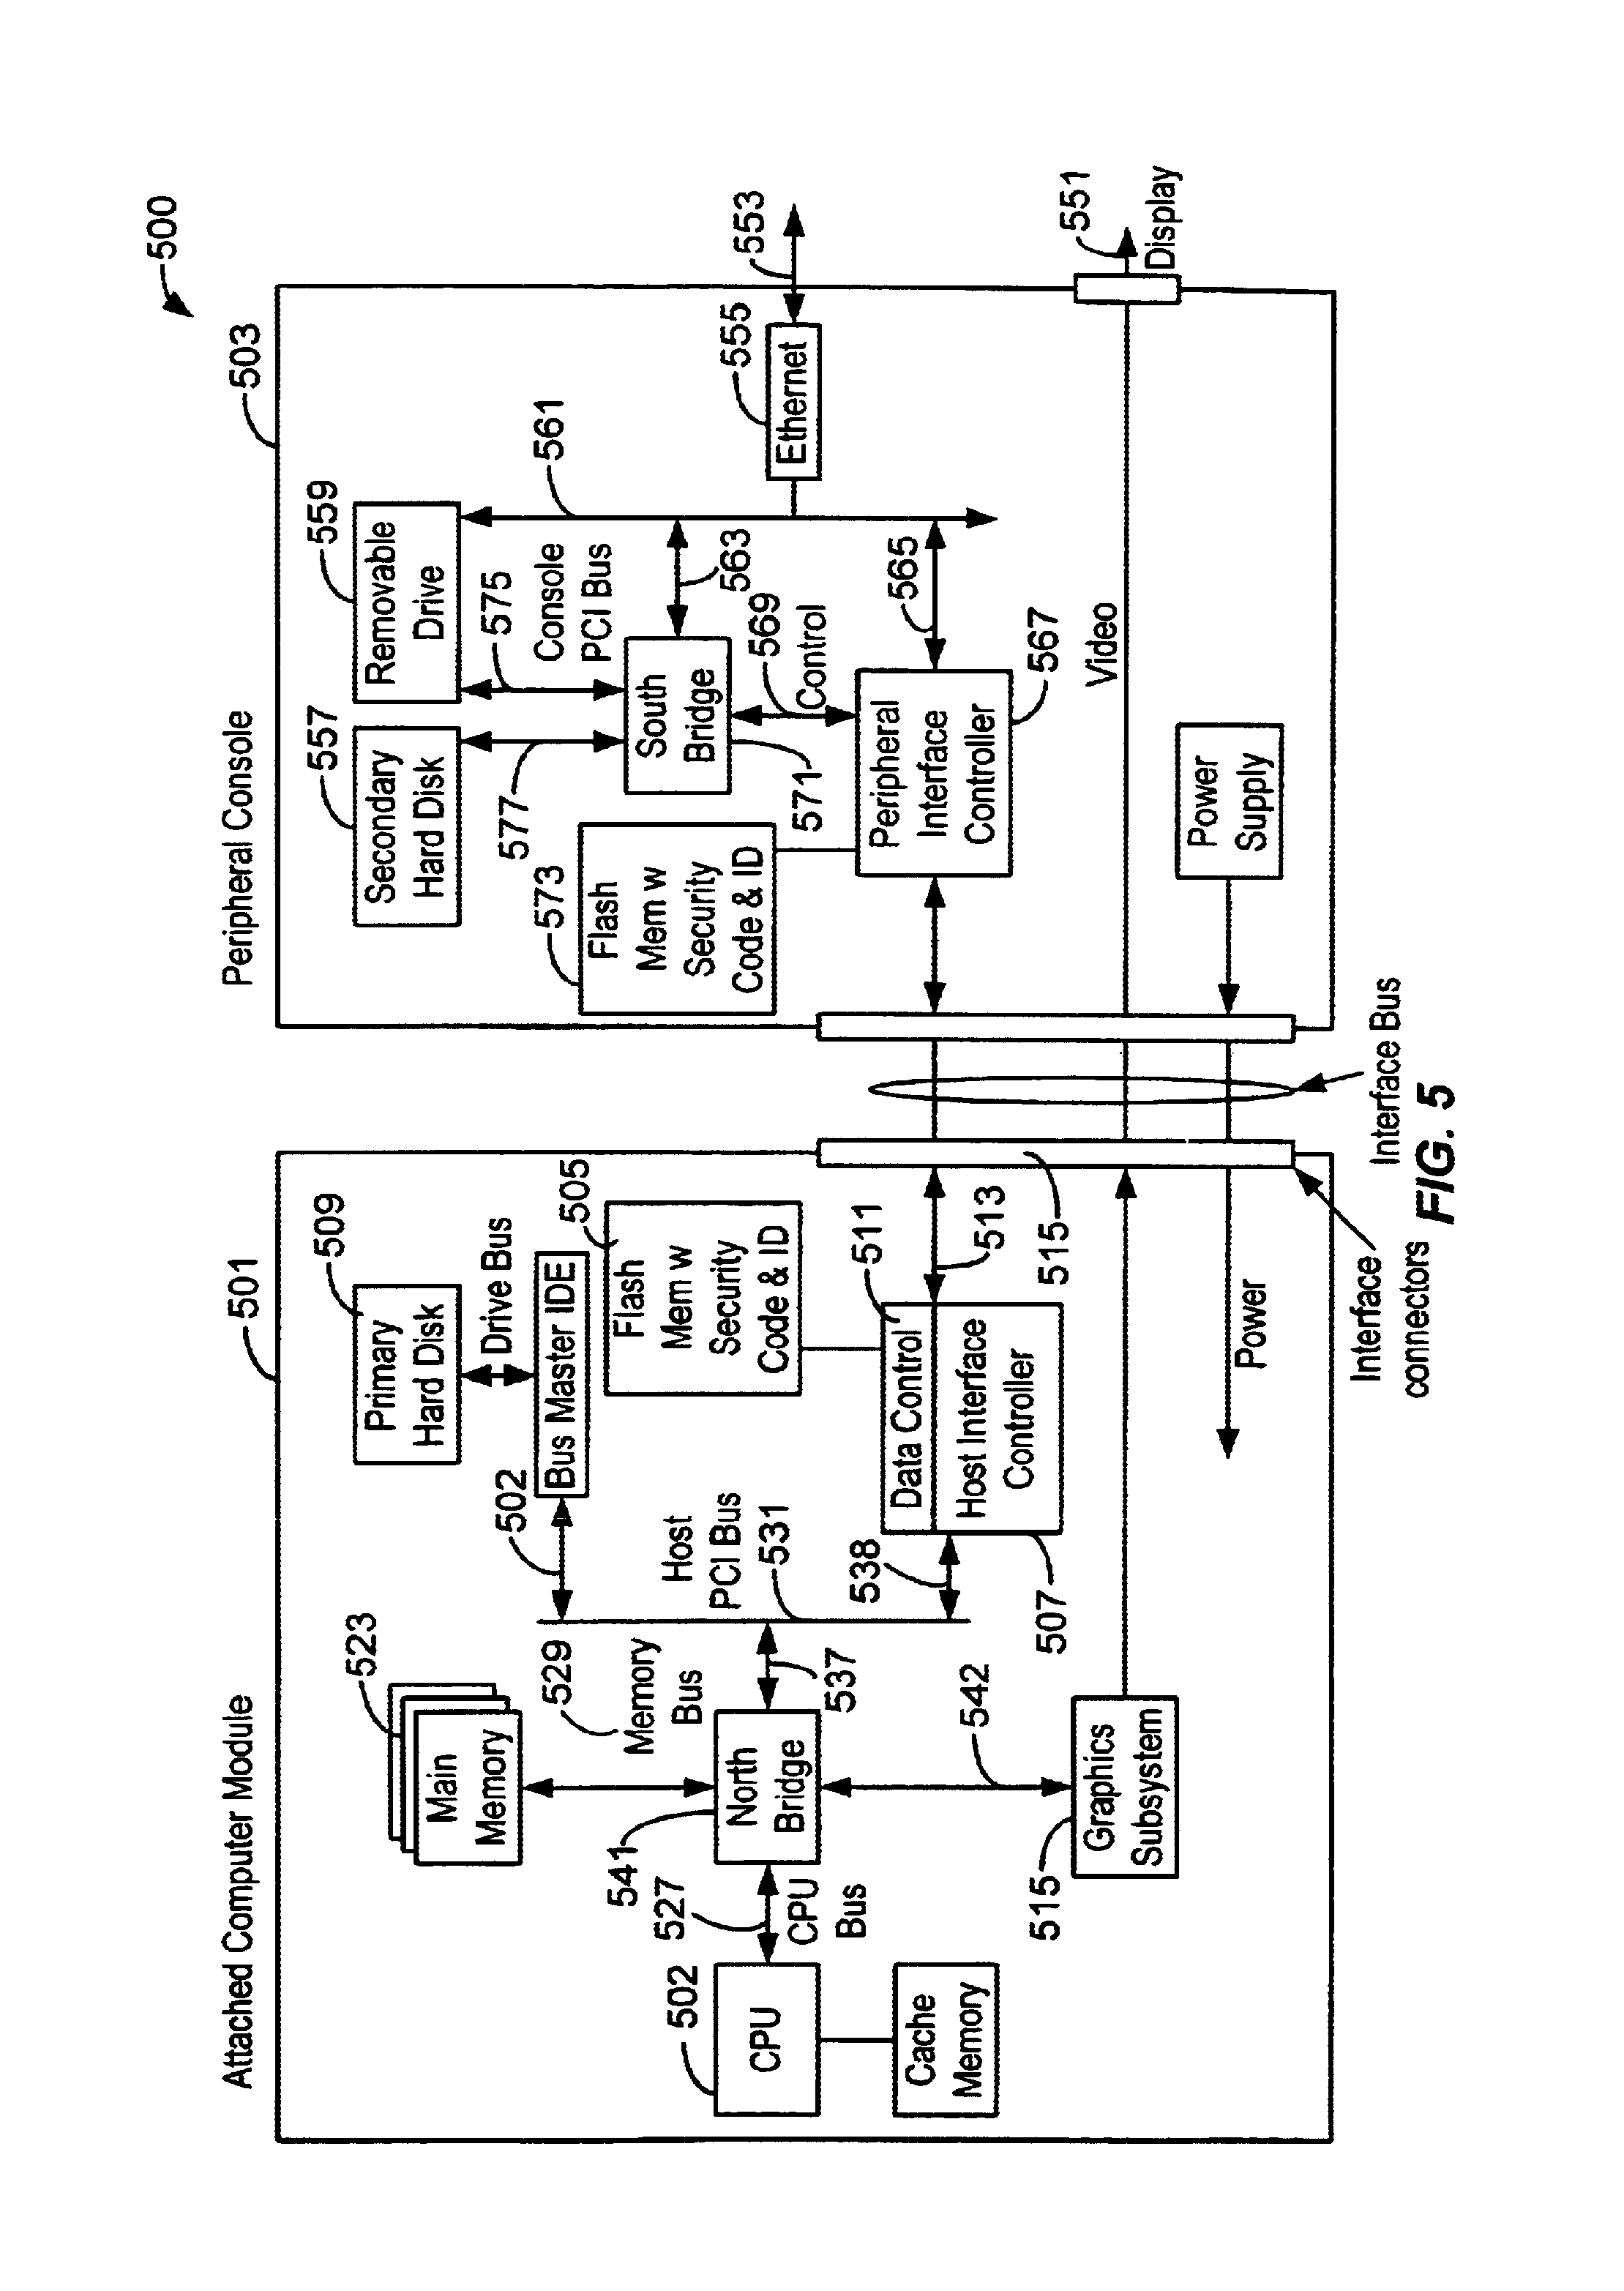 helix 5 ethernet wiring diagram